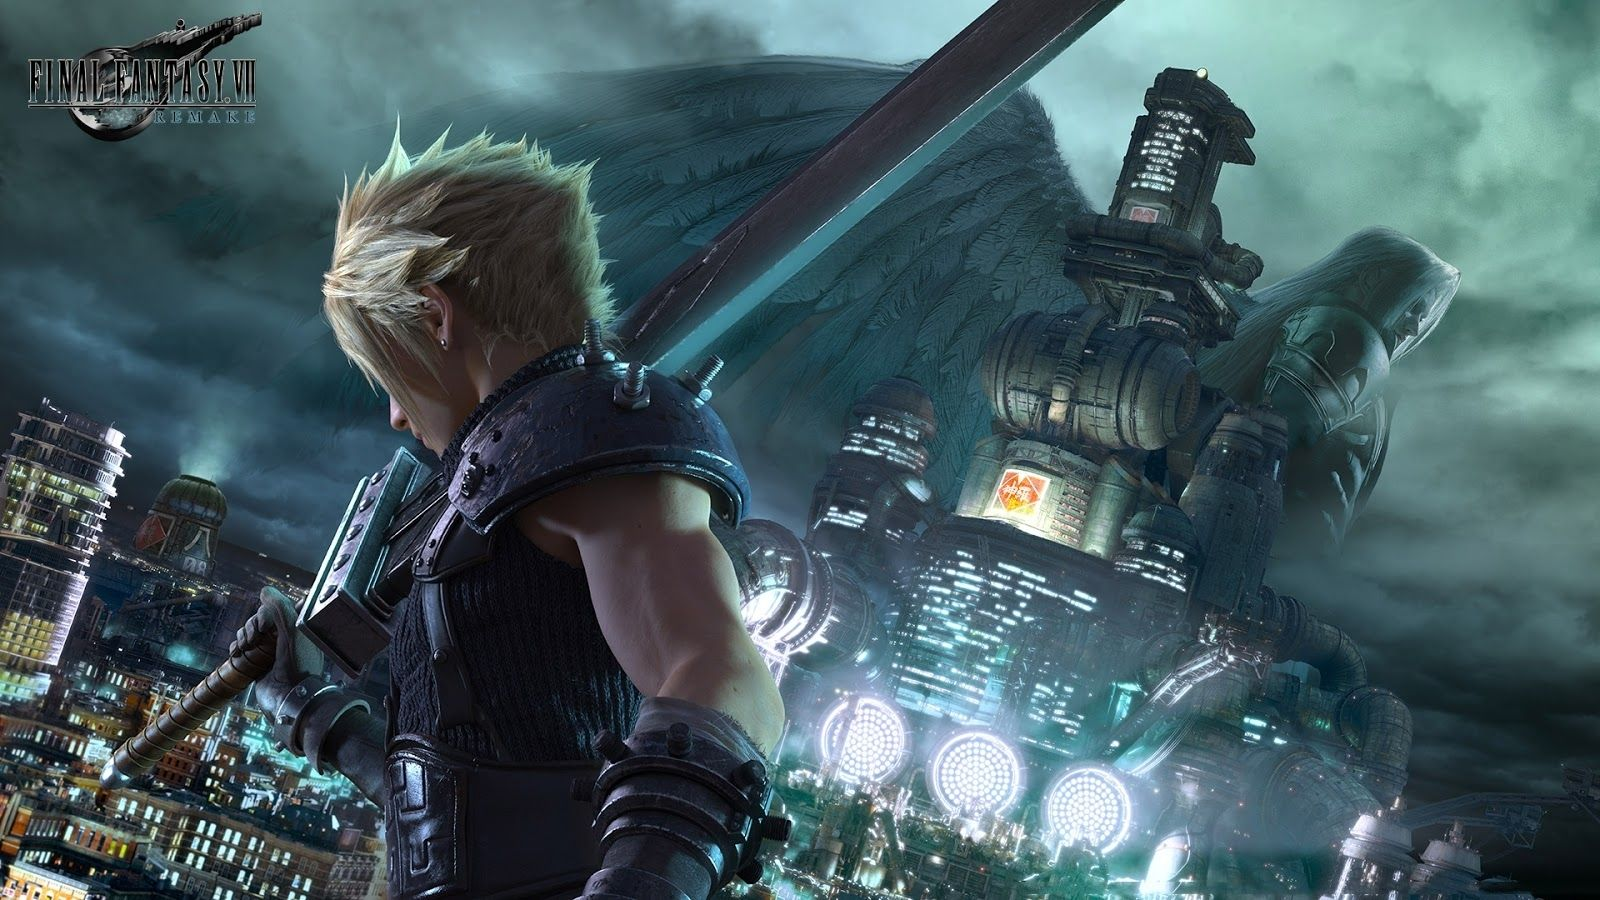 10 Latest Final Fantasy 7 Wallpaper Hd Full Hd 1080p For Pc